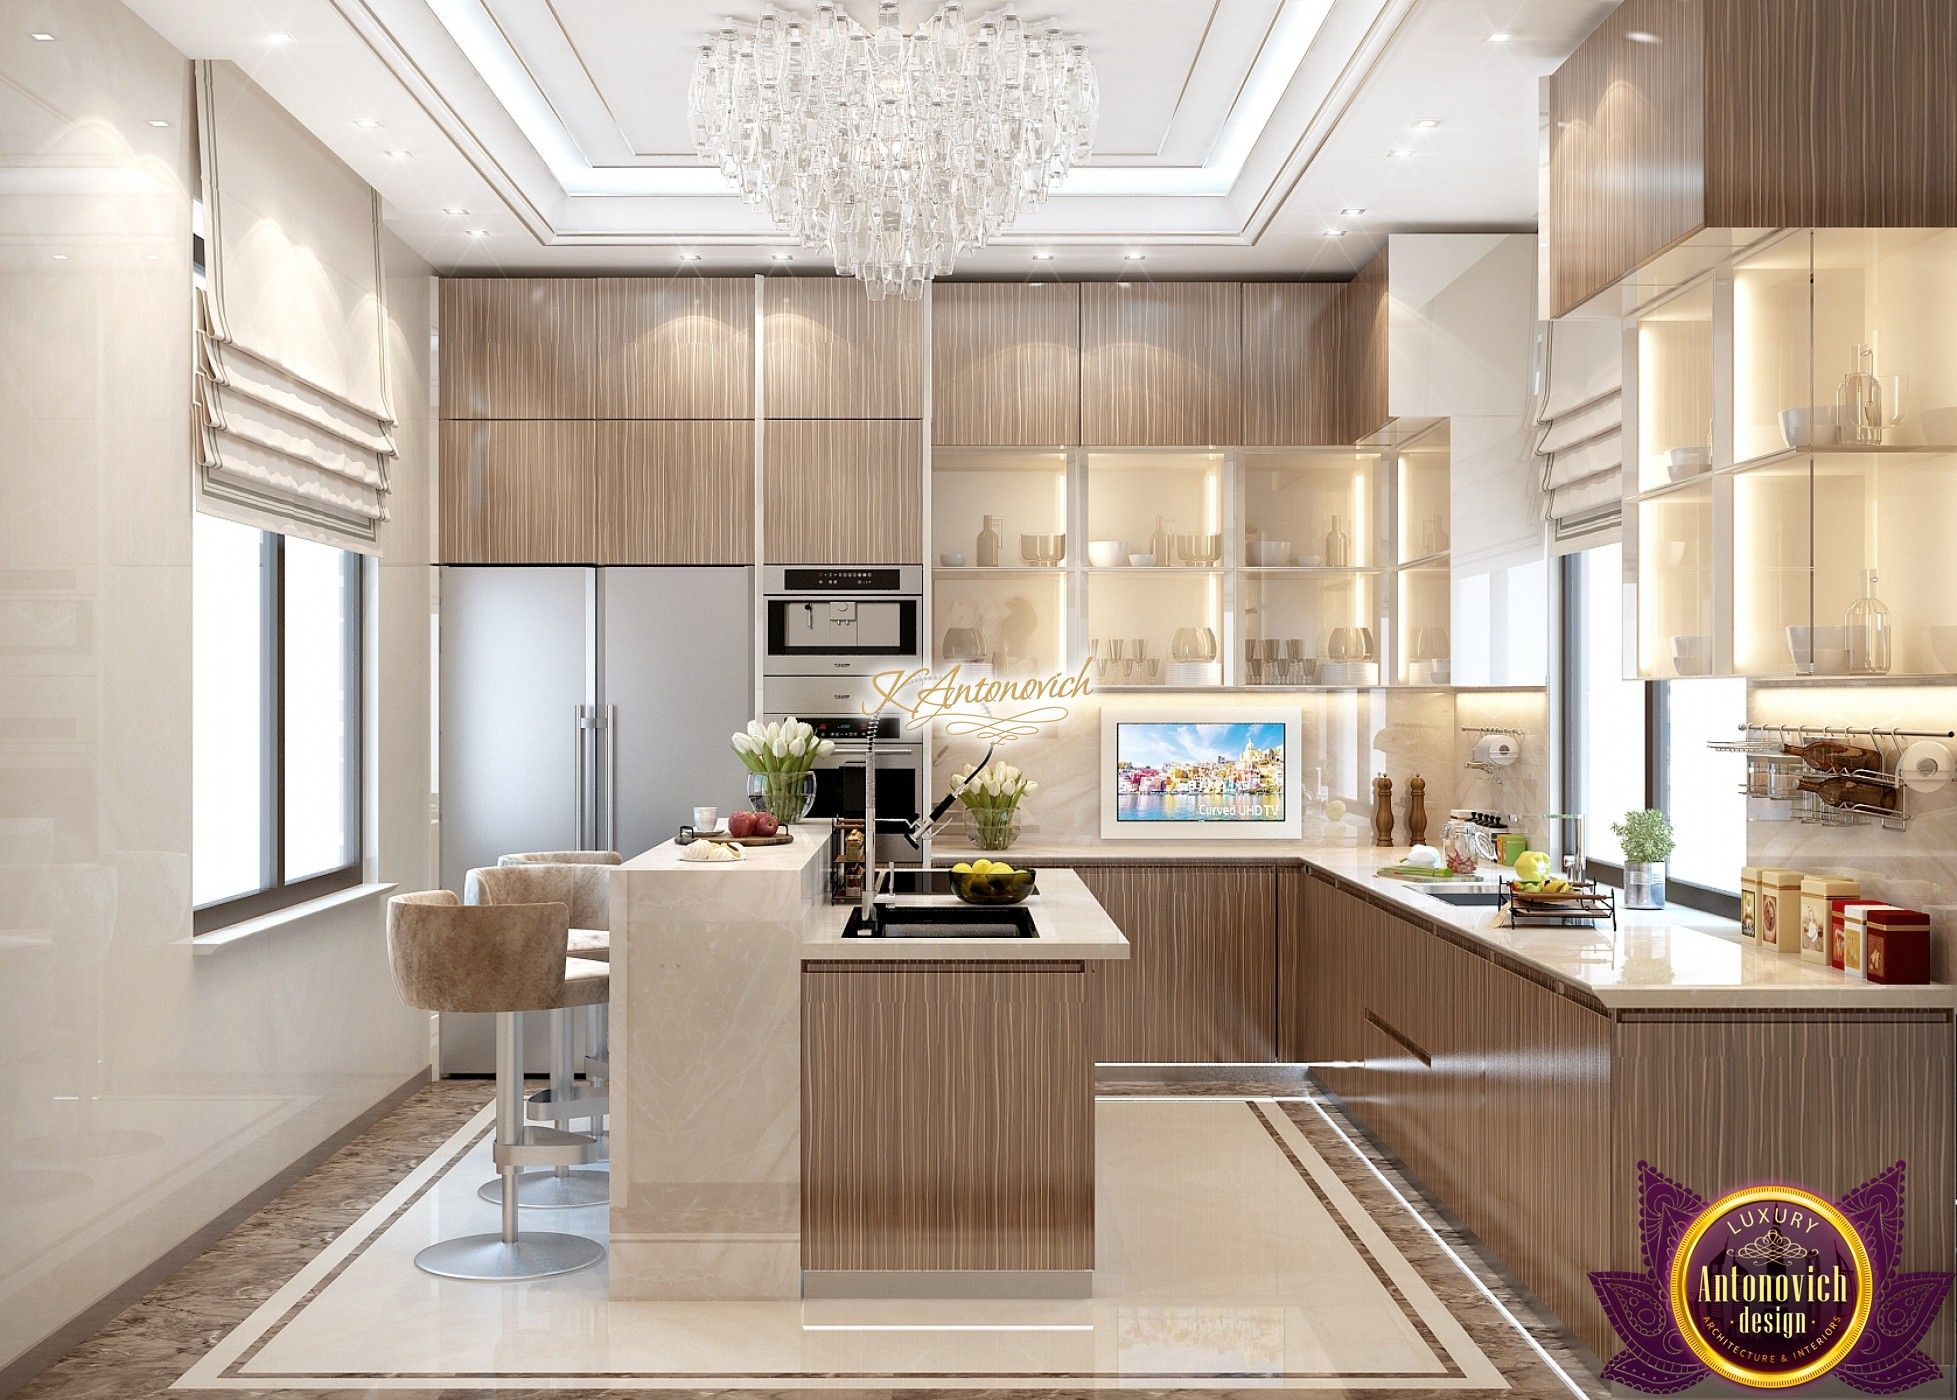 Nice Kitchen Favorite Concept Design Of All Time Superiority And High Grade Contact U Luxury Kitchen Design Diy Kitchen Remodel Interior Design Kitchen